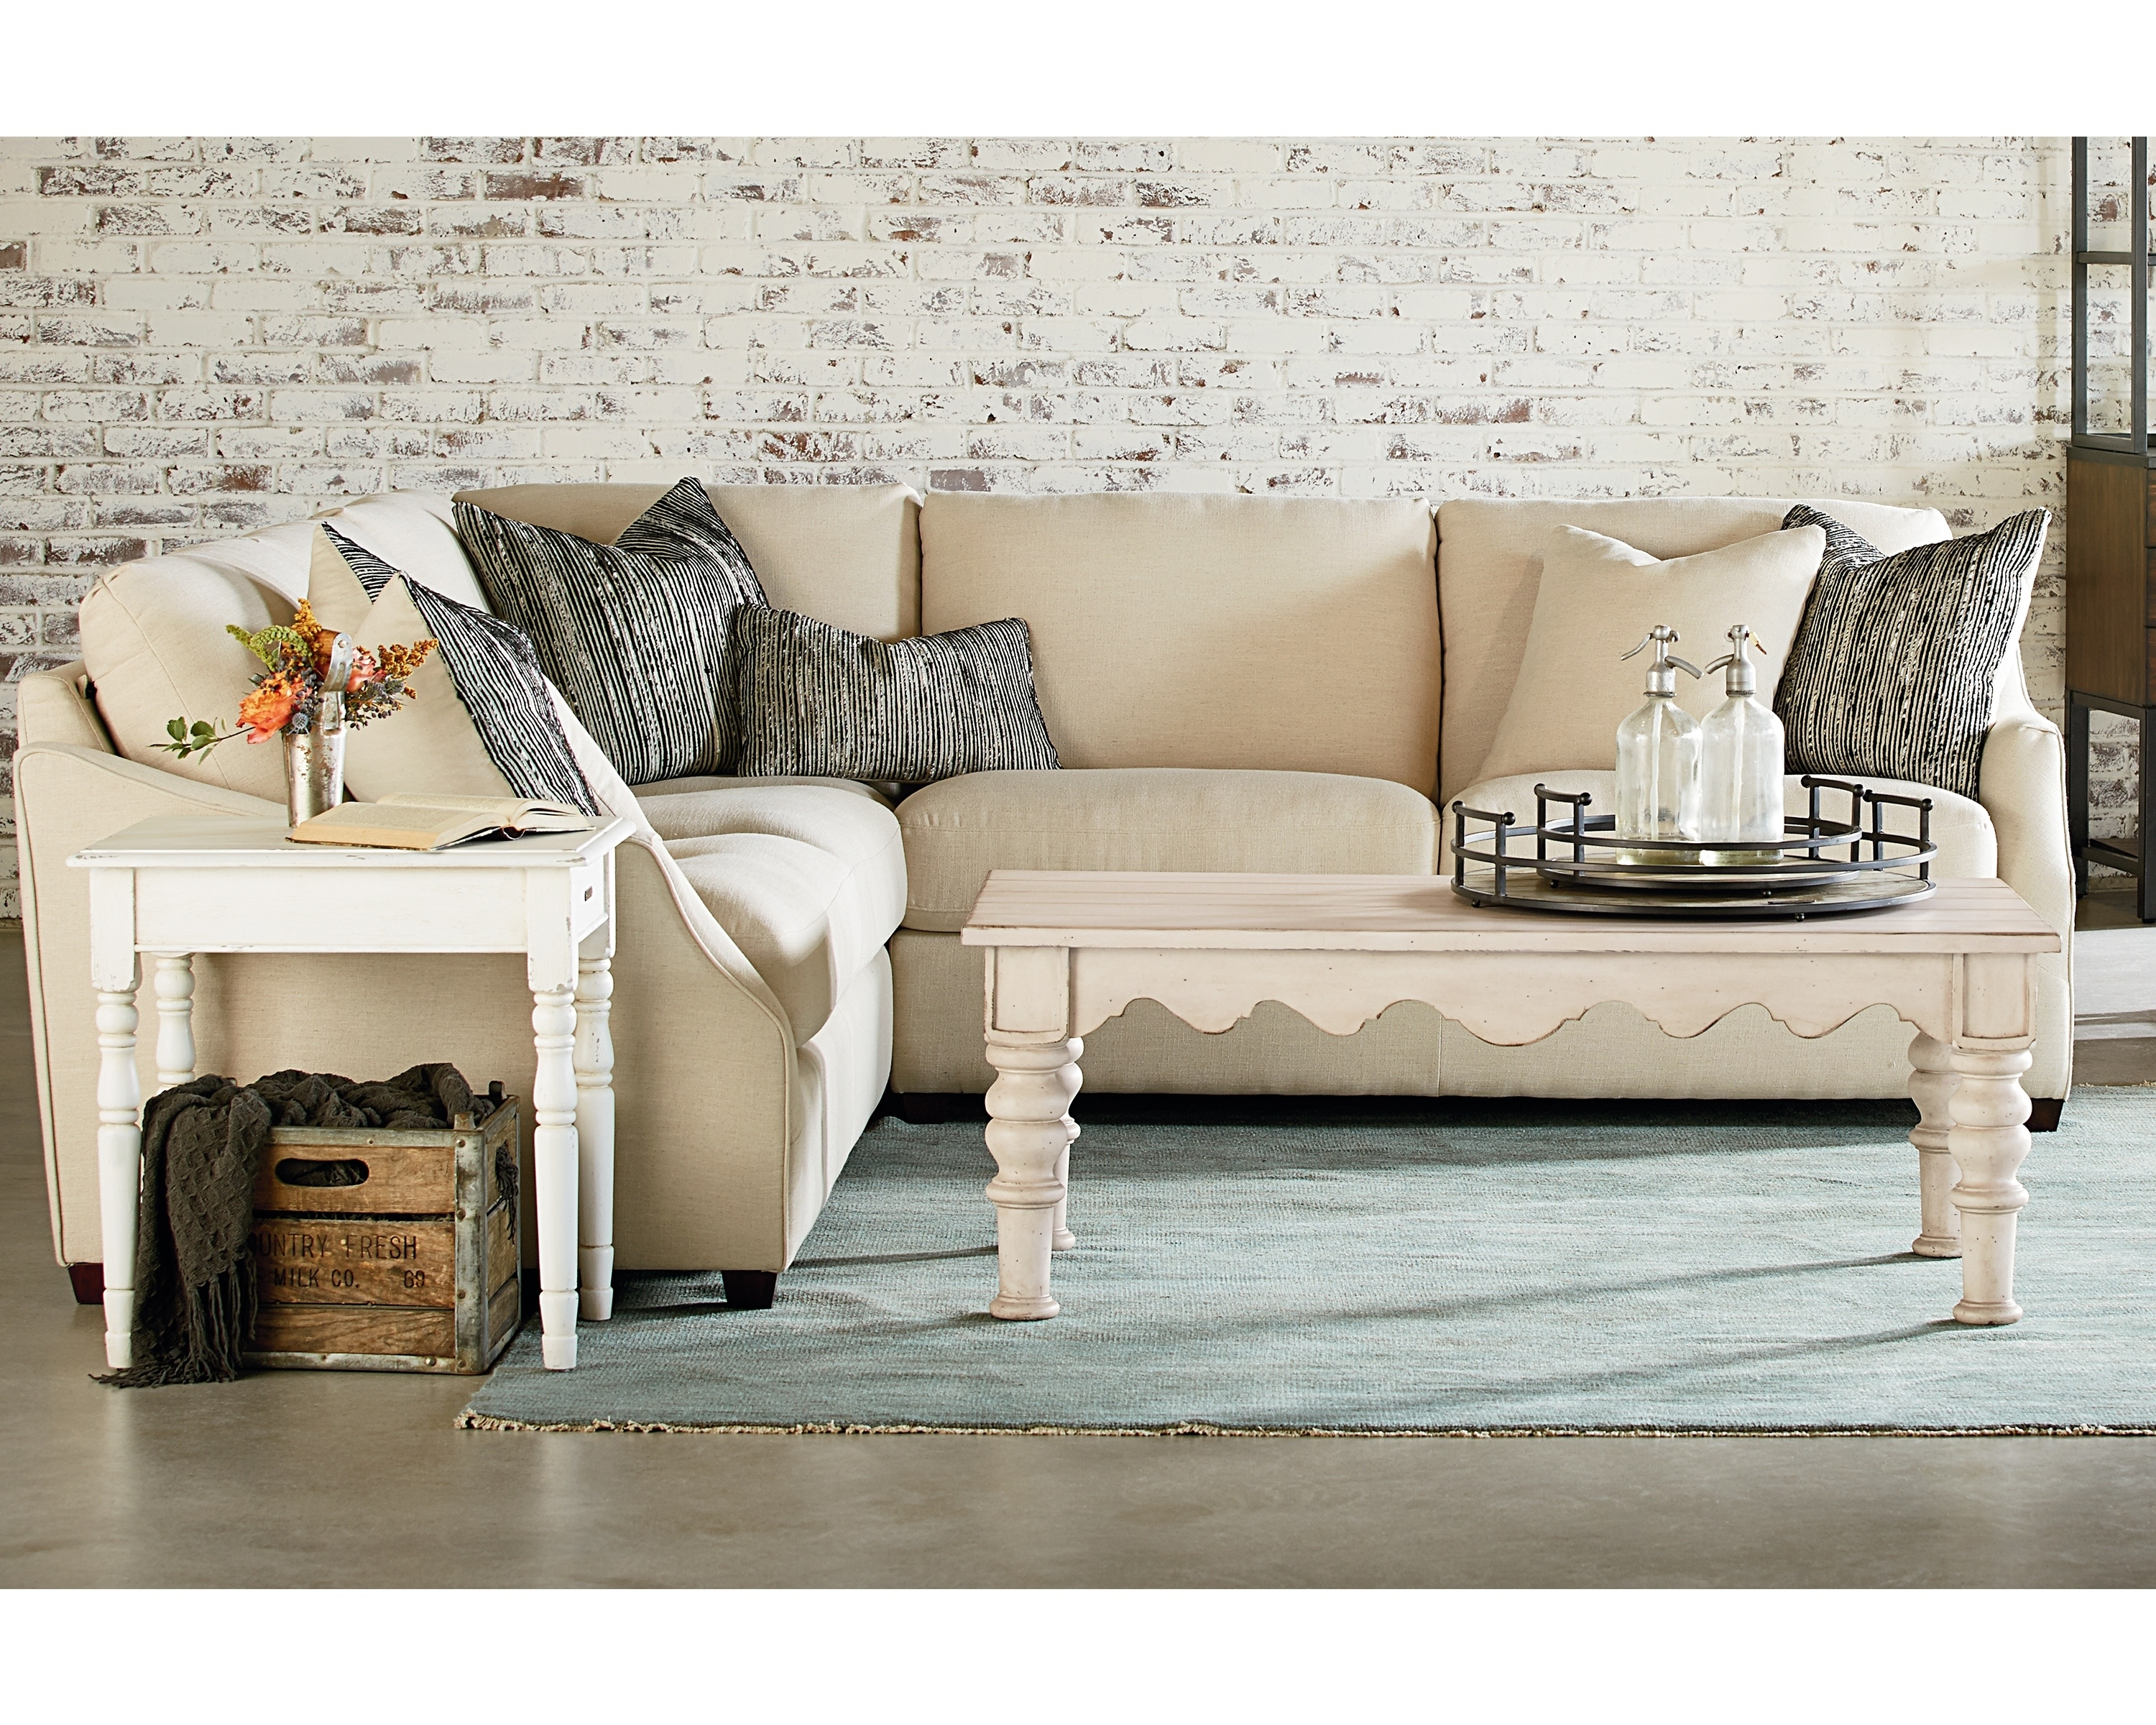 Homestead Sectional – Magnolia Home For Magnolia Home Homestead 4 Piece Sectionals By Joanna Gaines (View 2 of 25)